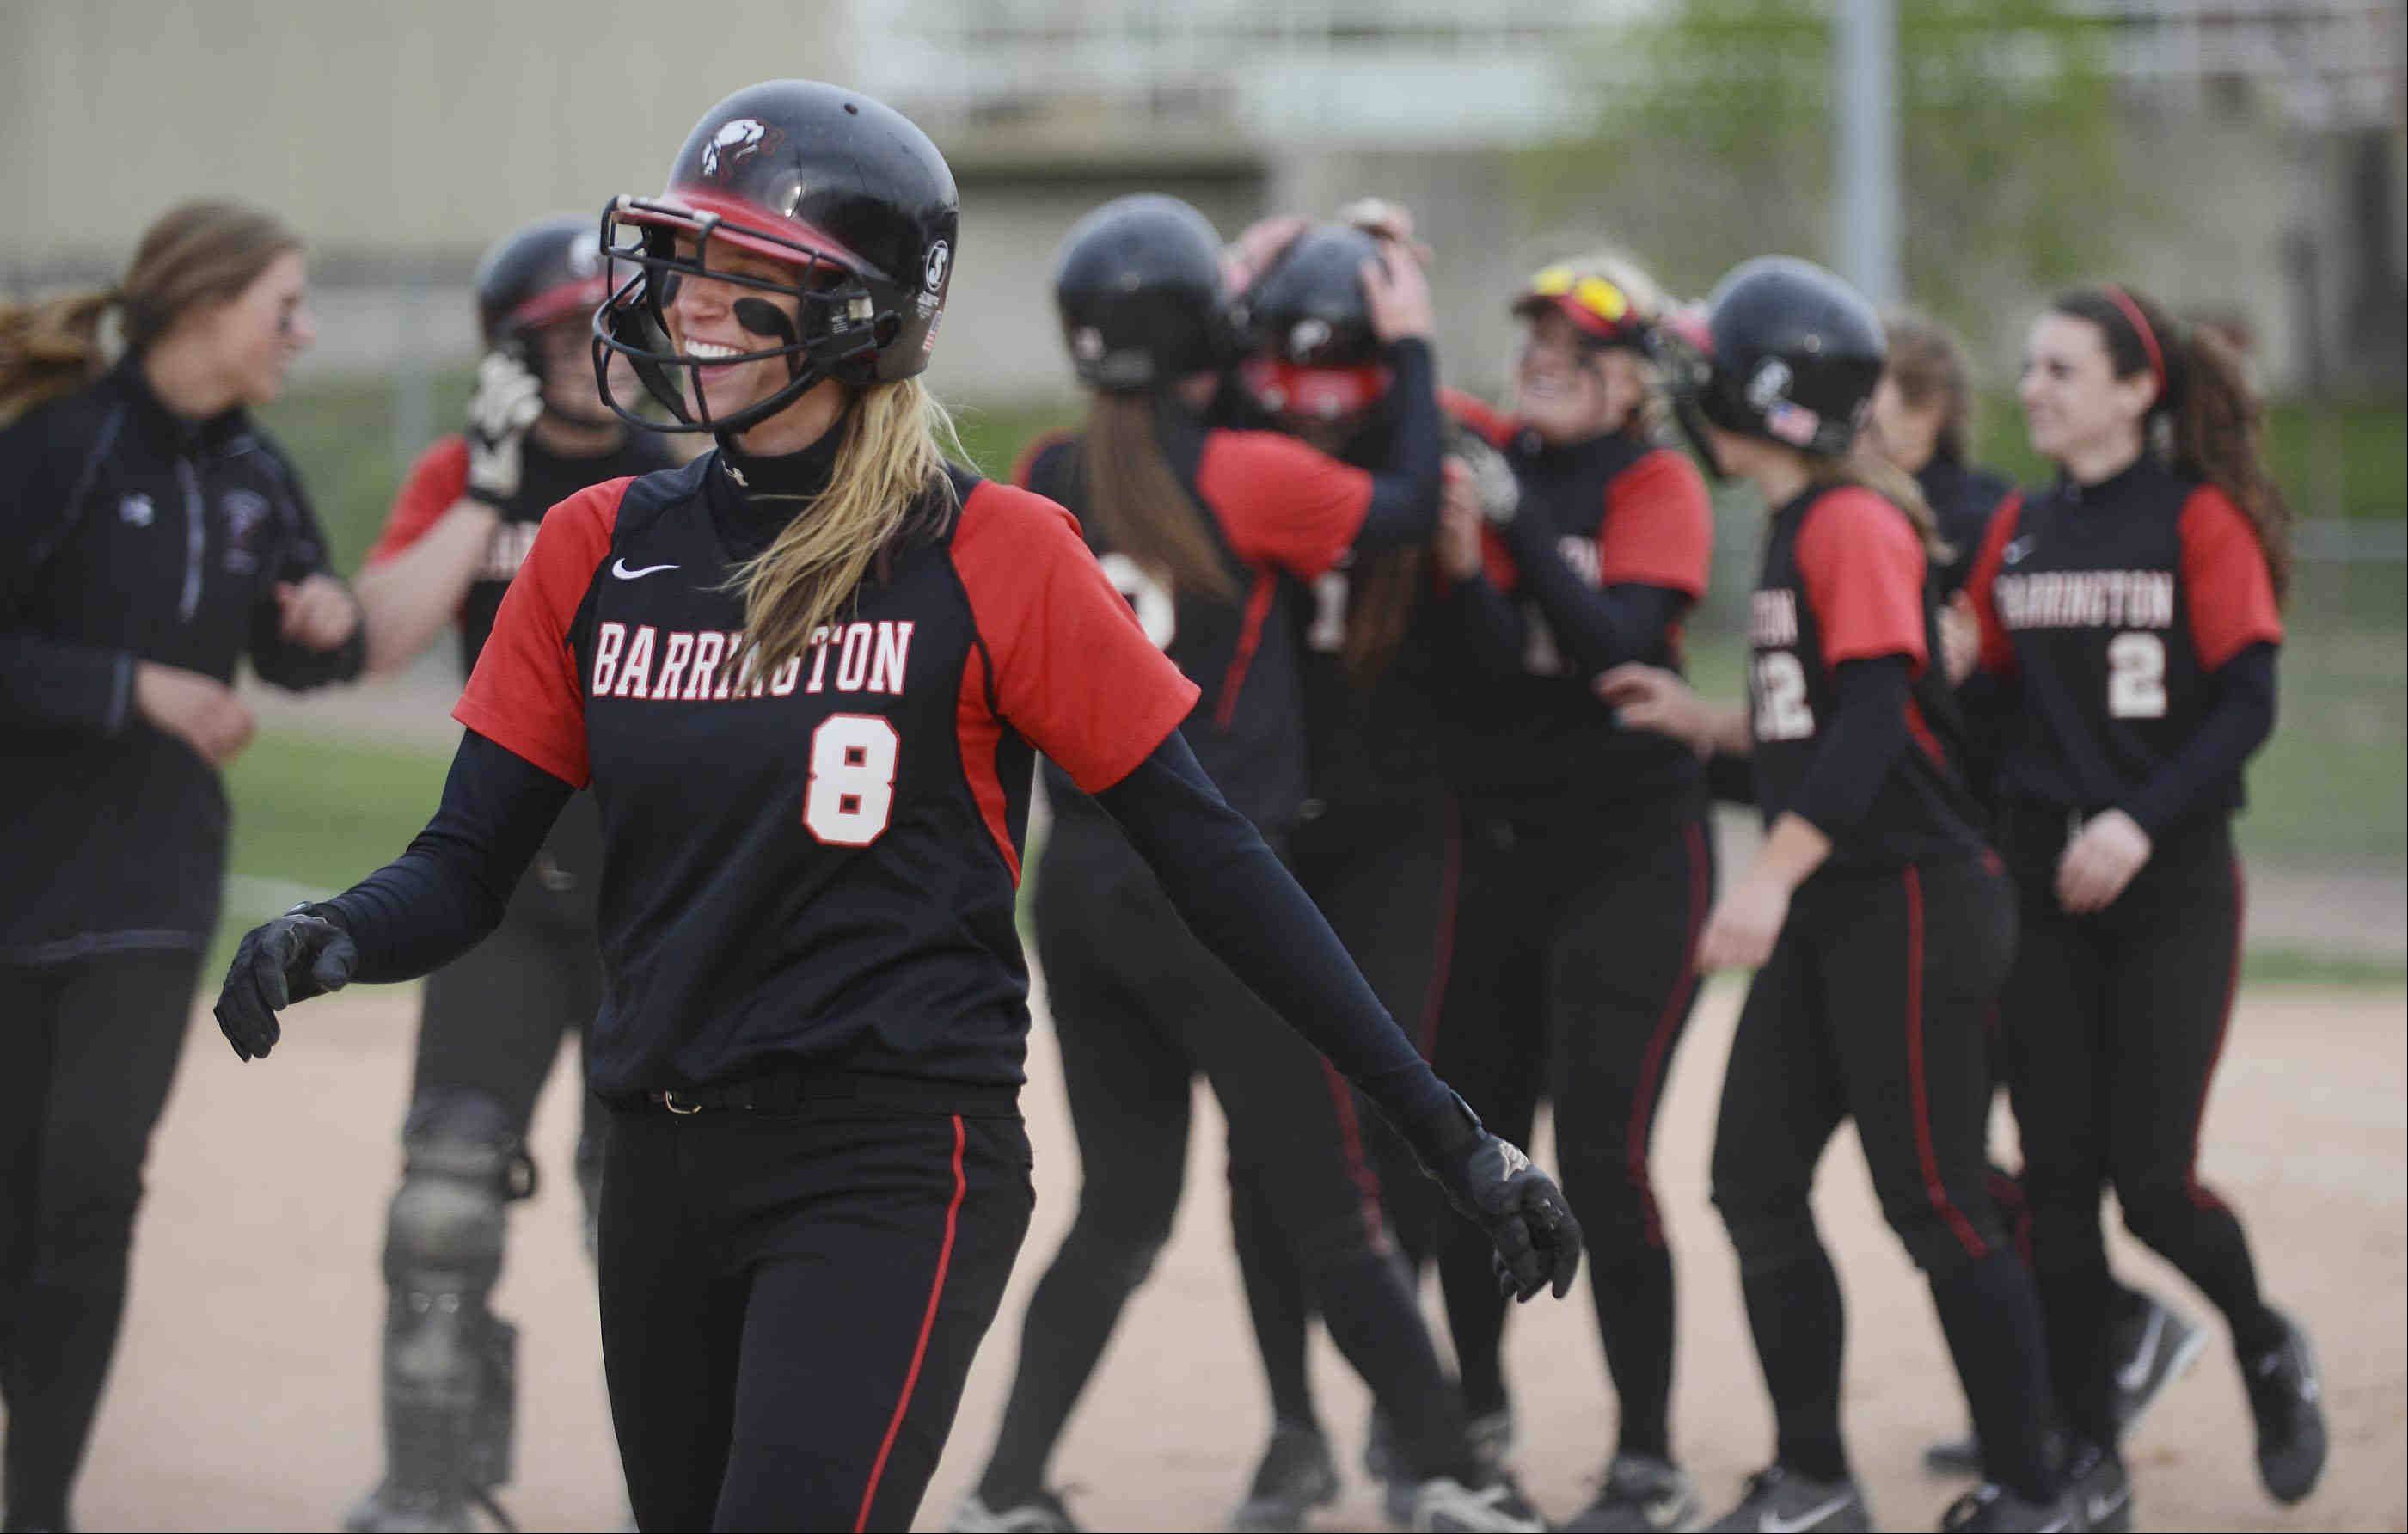 Barrington's Krista Moore laughs as her teammates celebrate behind her after the Fillies defeated Fremd on Monday at the Fields of Dreams. Moore reached on an error in the winning rally.